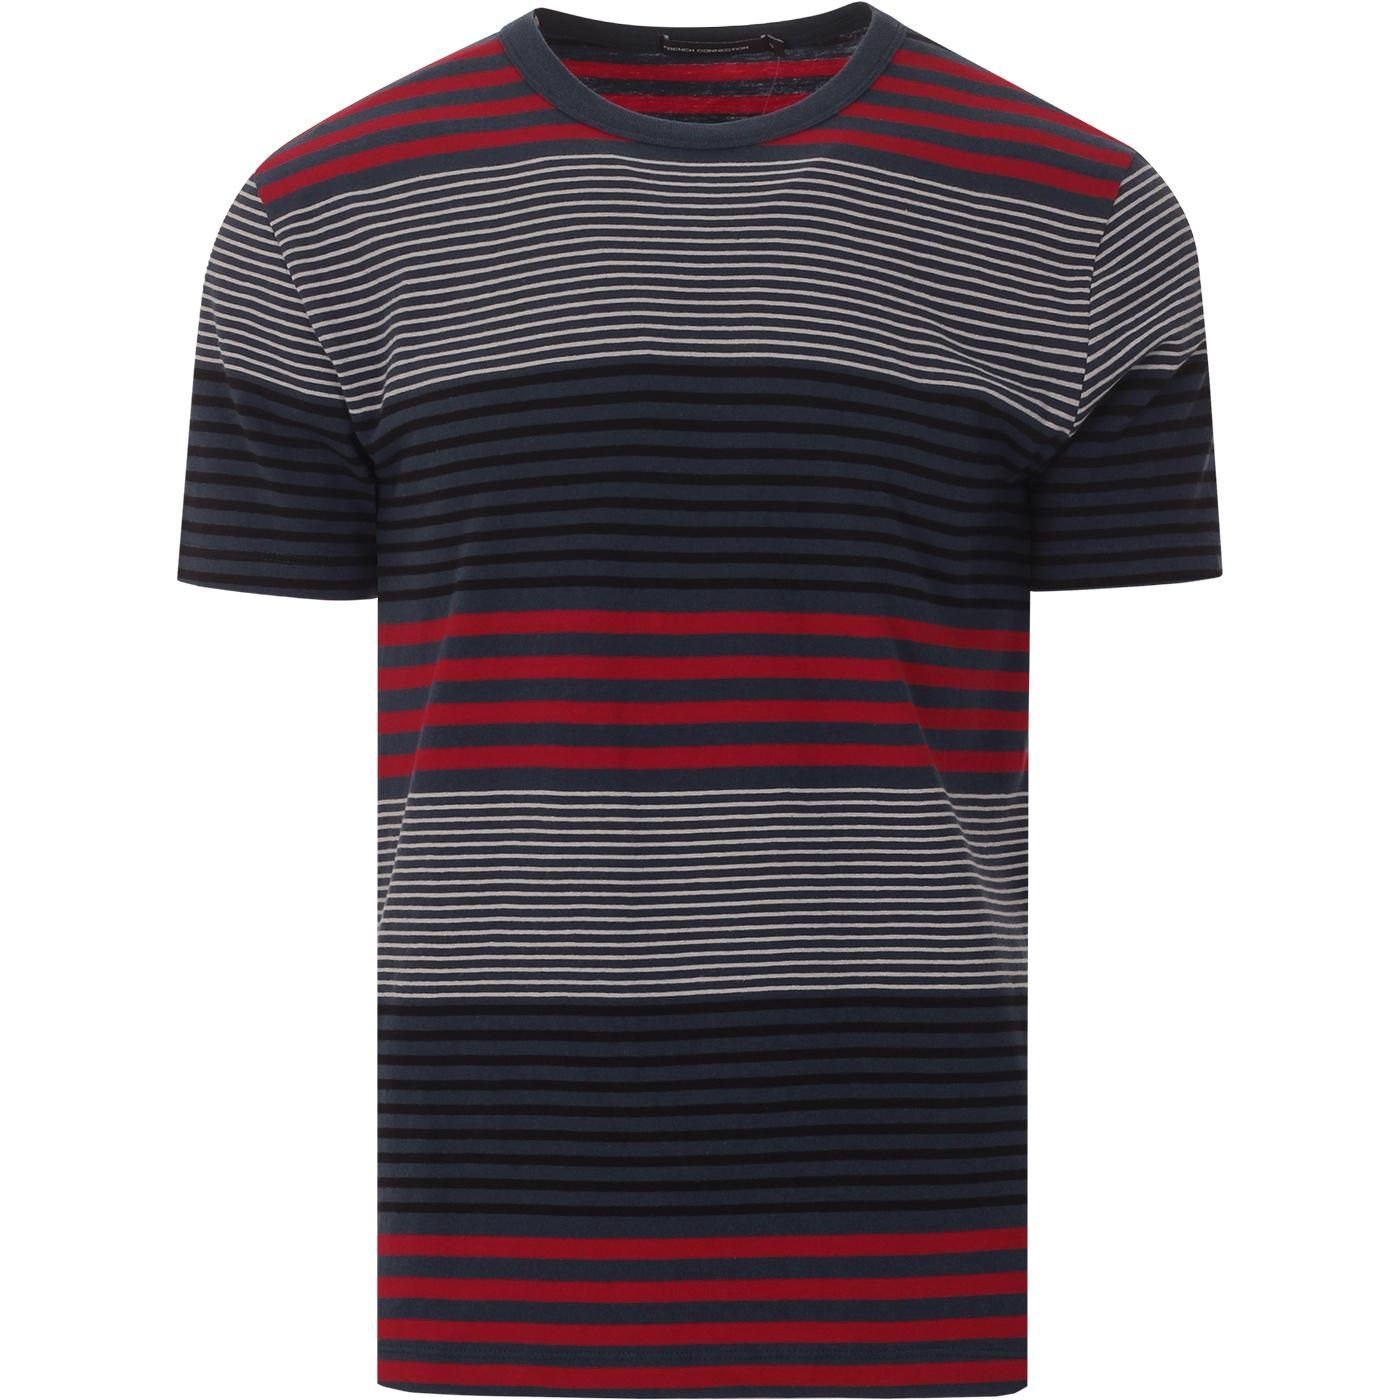 Dragged Stripe FRENCH CONNECTION Retro T-shirt